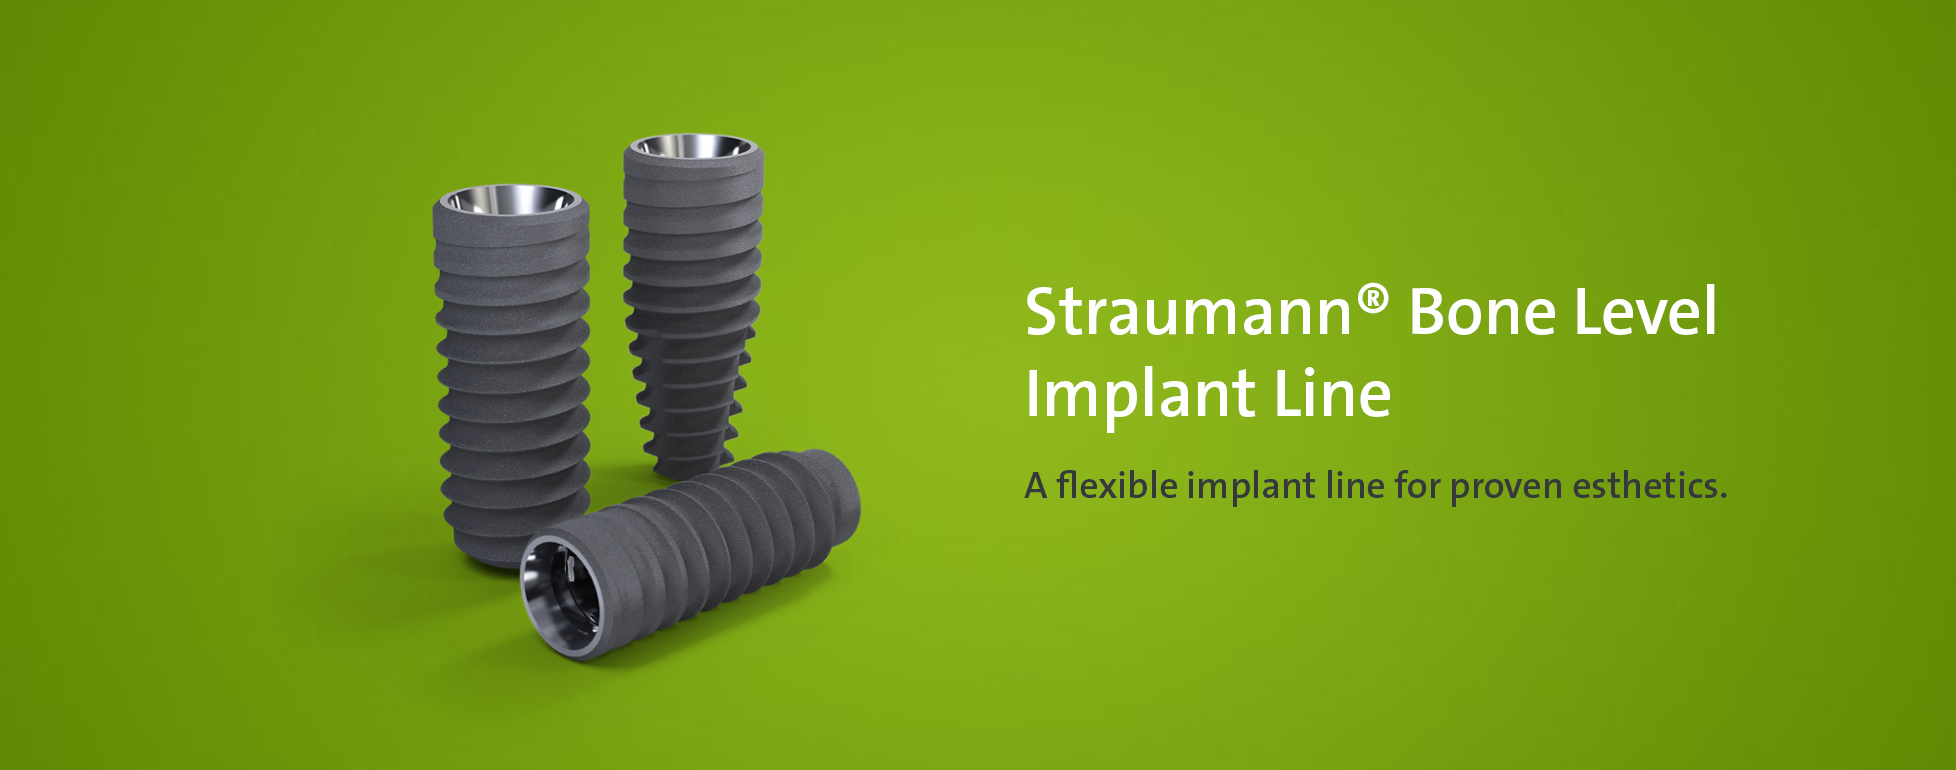 Straumann Bone Level Implant Line